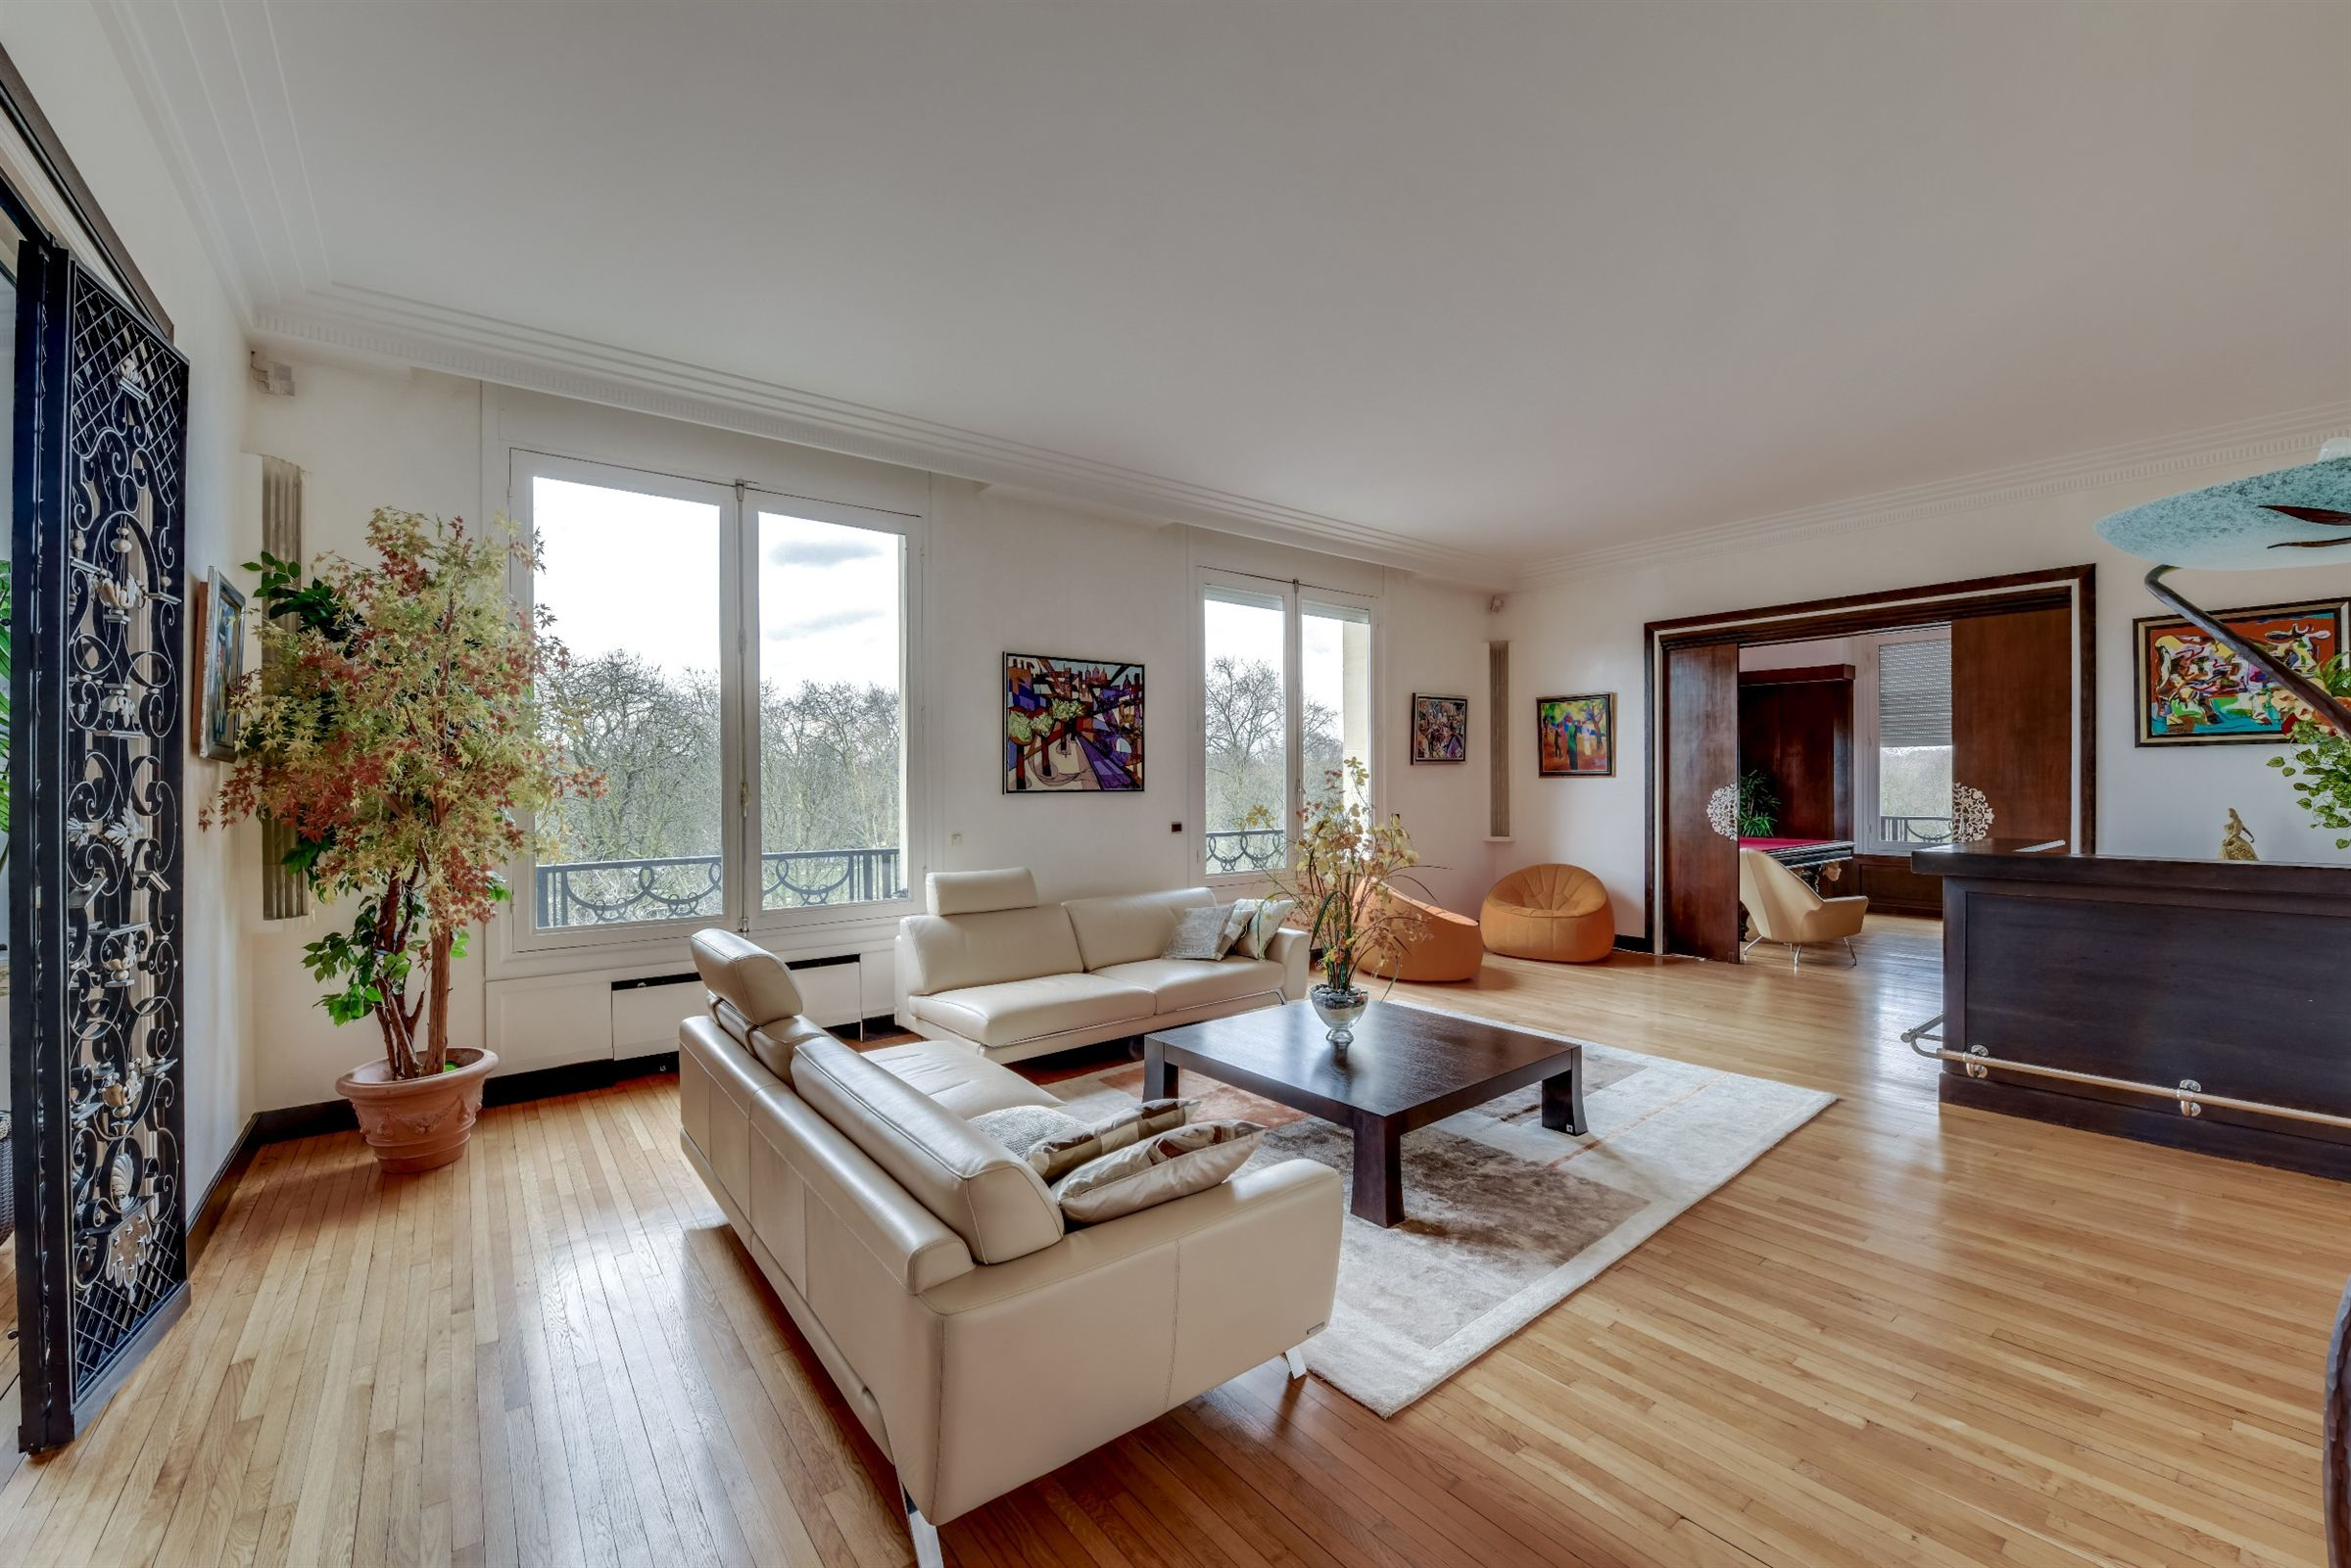 sales property at A 270 sq.m apartment for sale, South oriented Neuilly - Bois, 3 bedrooms